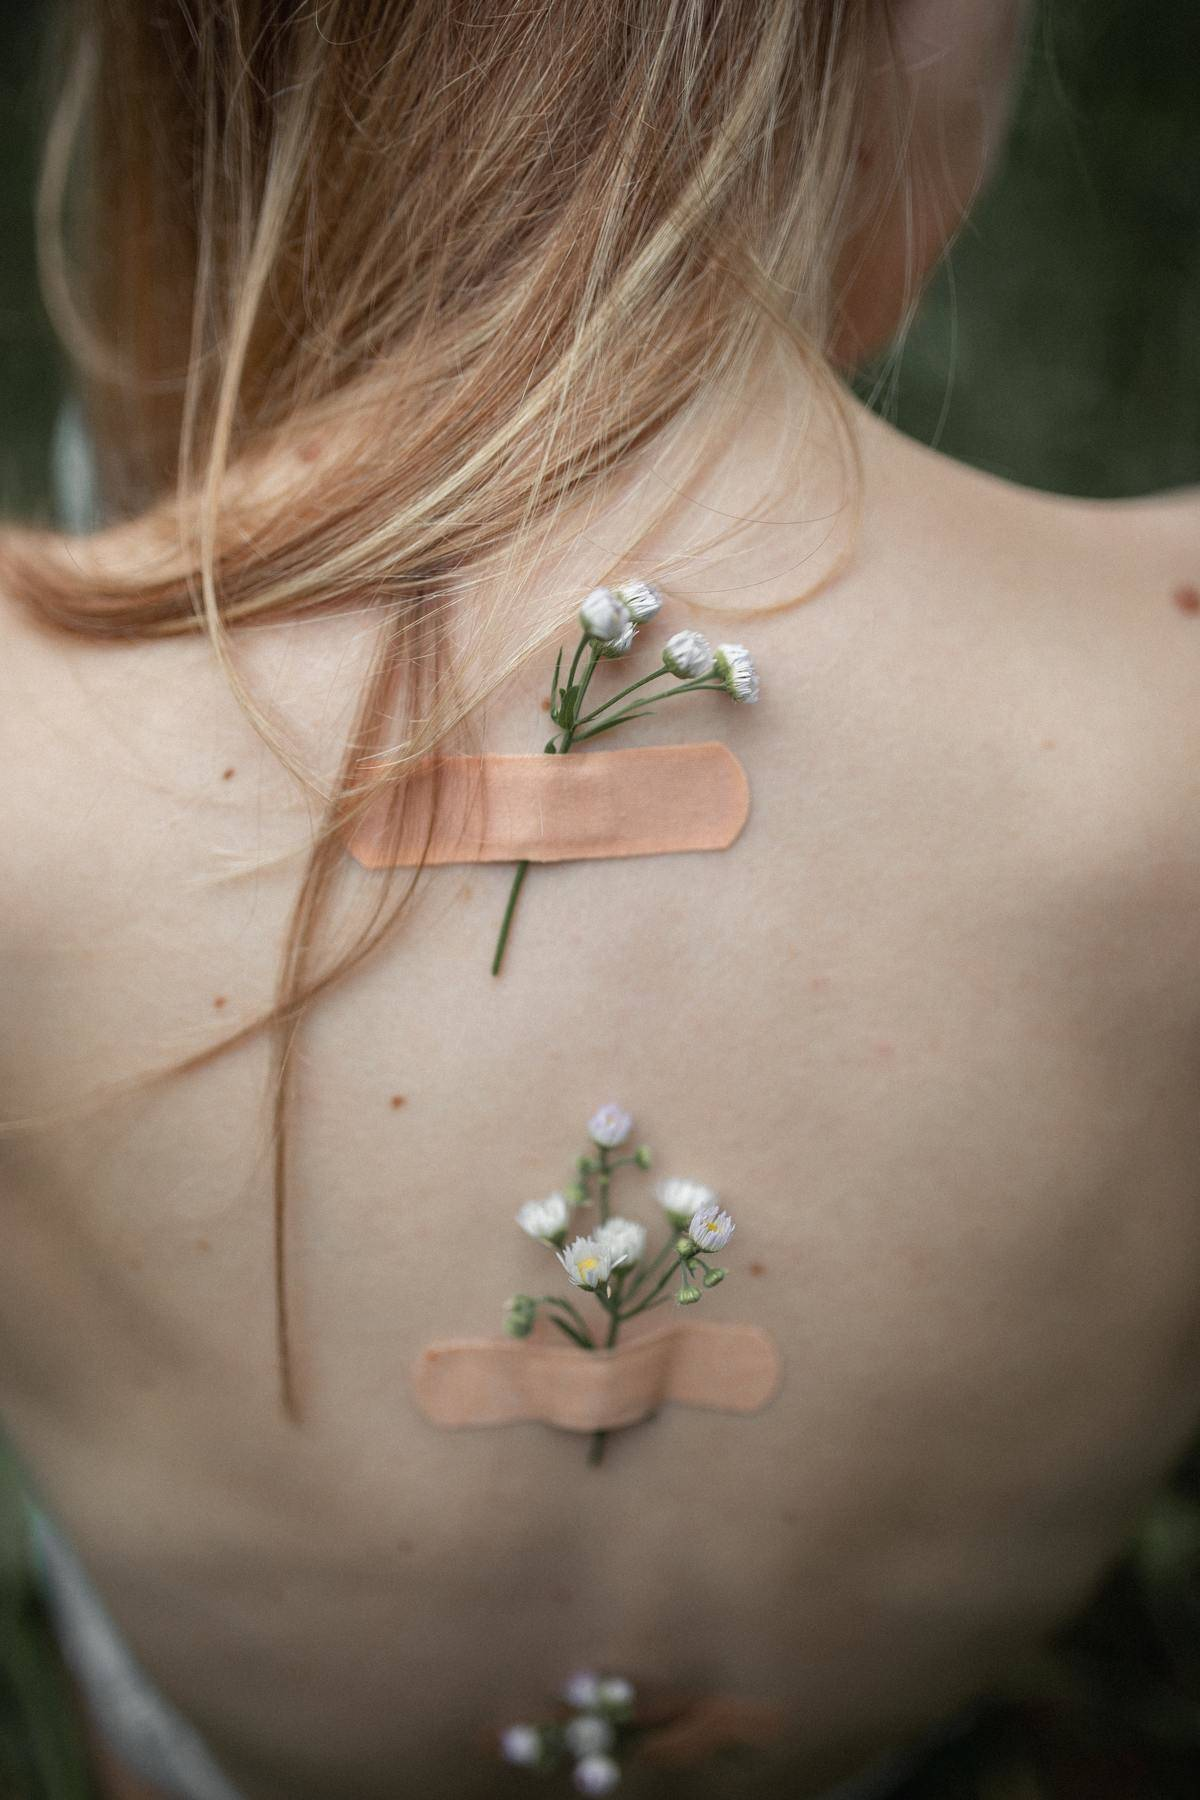 flowers attached with Band-Aids on woman's back